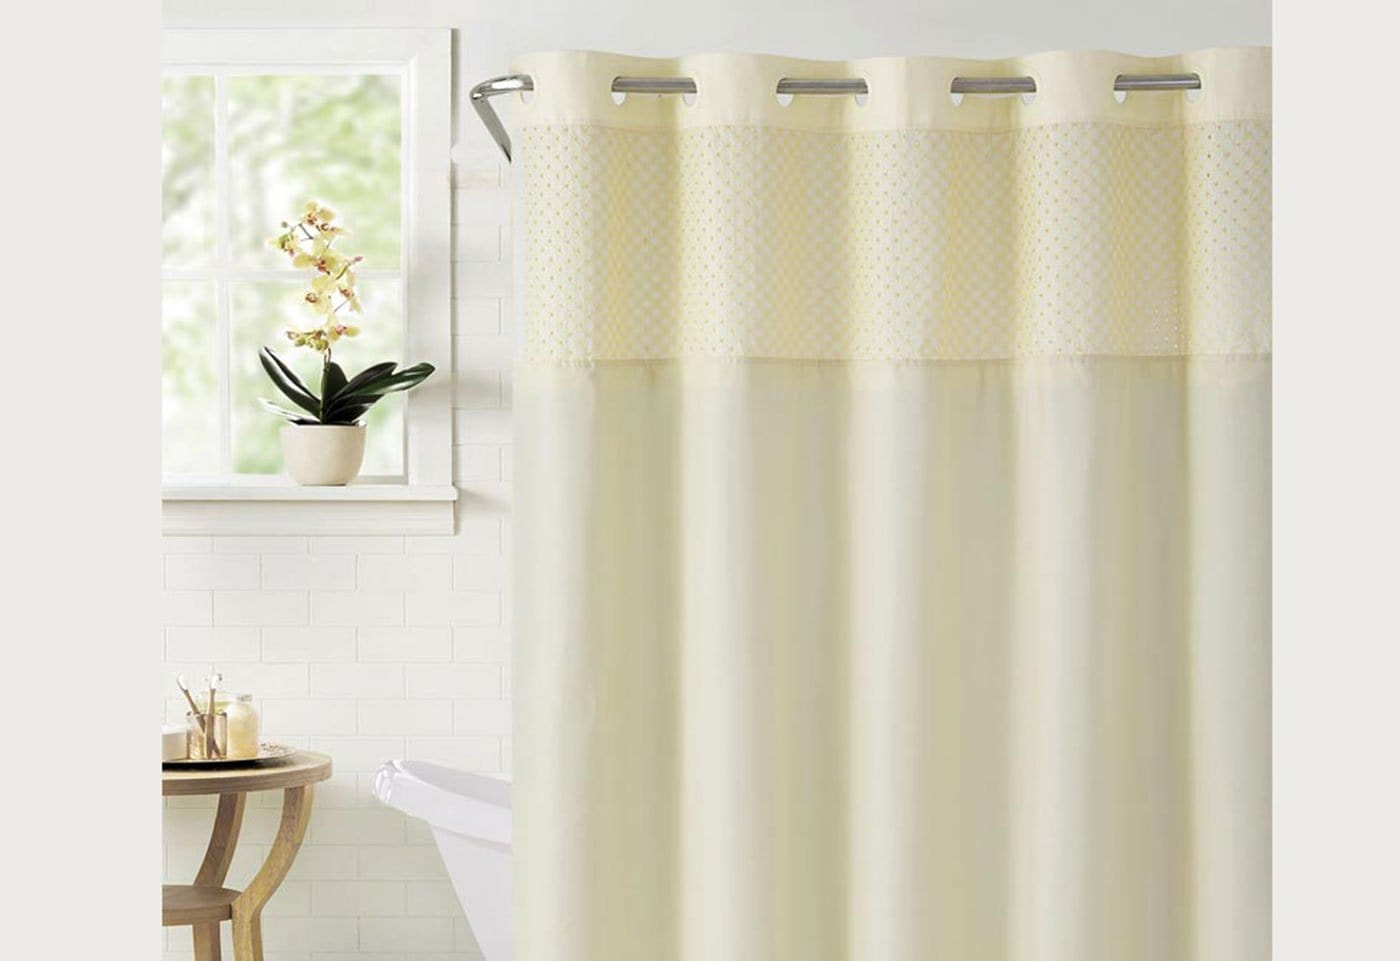 Hookless® Bahamas Shower Curtain Includes Snap On/Off Replaceable Liner - Vanilla